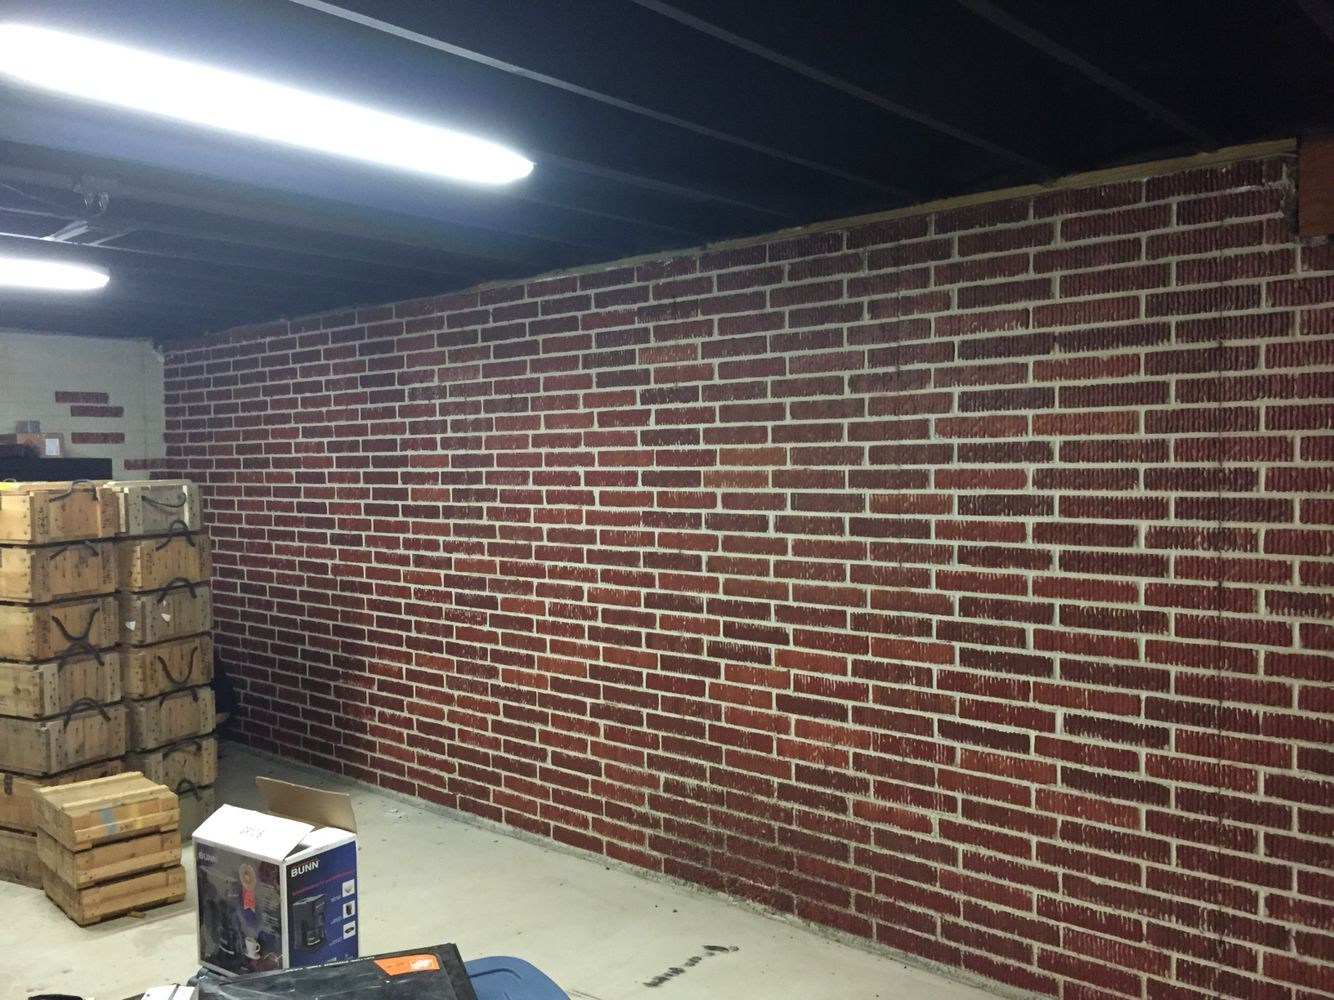 Painted Brick Form Poured Concrete Basement Walls With Ceiling Painted Black Concrete Basement Walls Basement Walls Brick Waterproofing